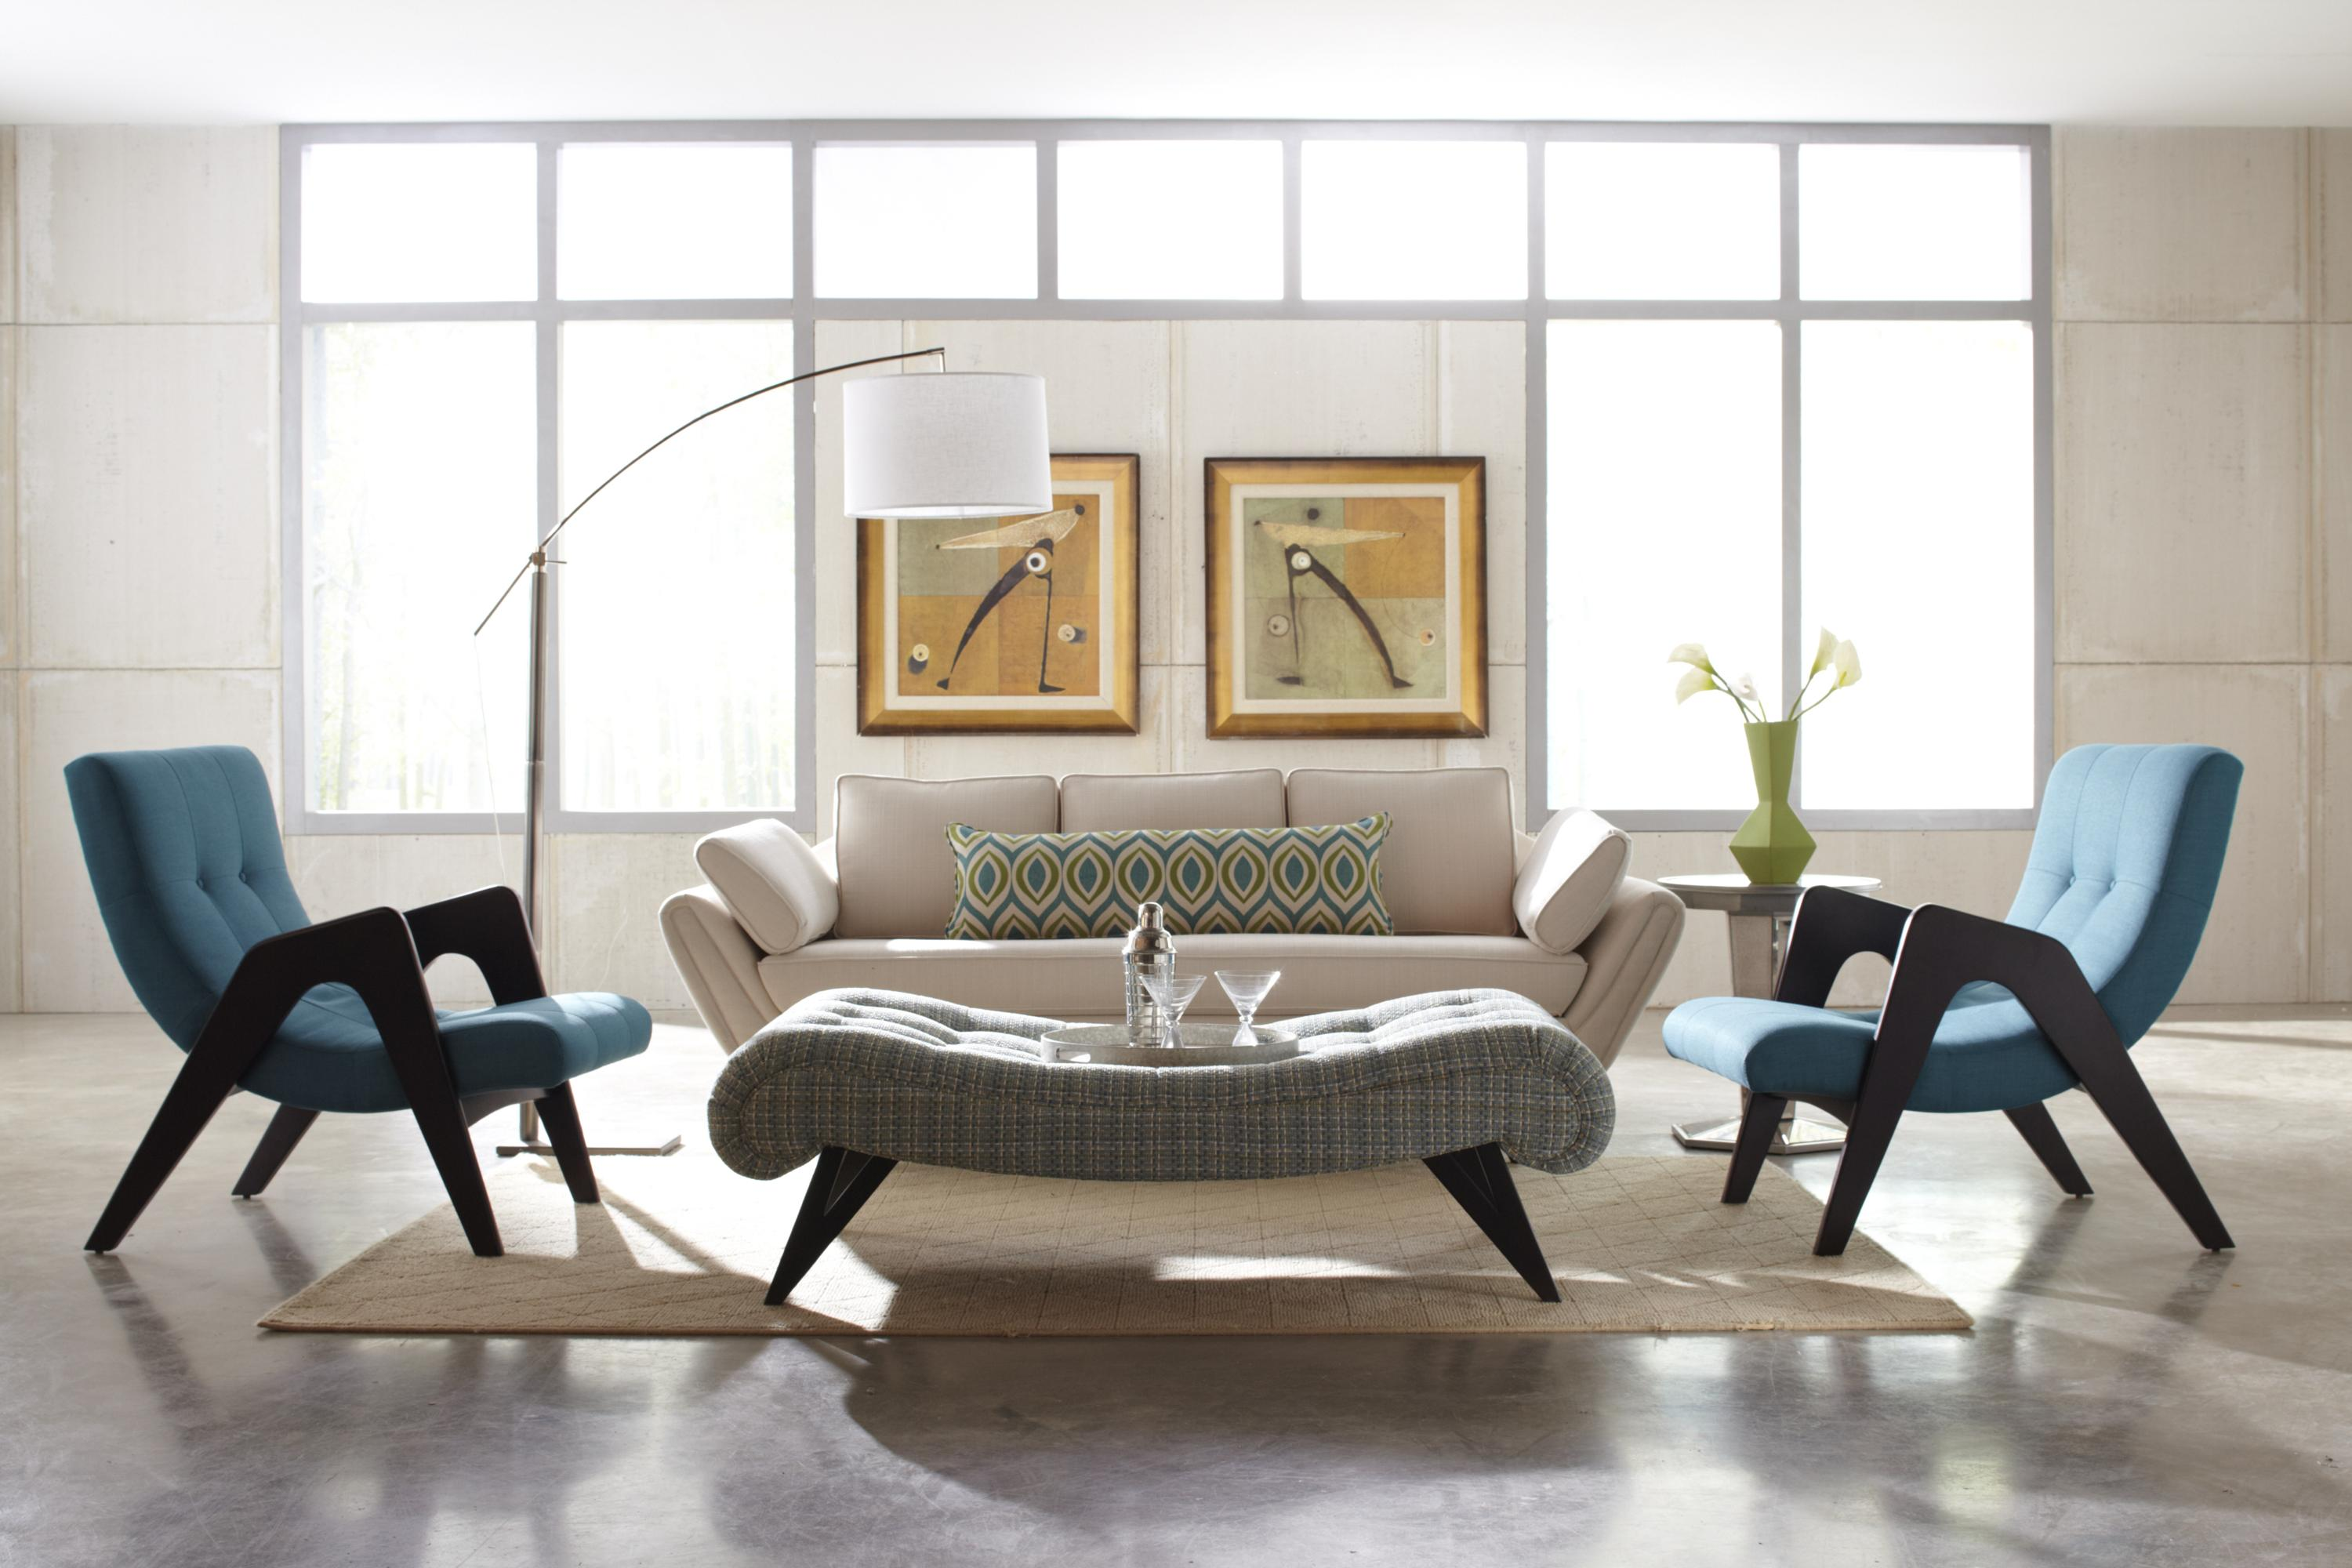 How to choose the perfect living room armchair | unite for climate